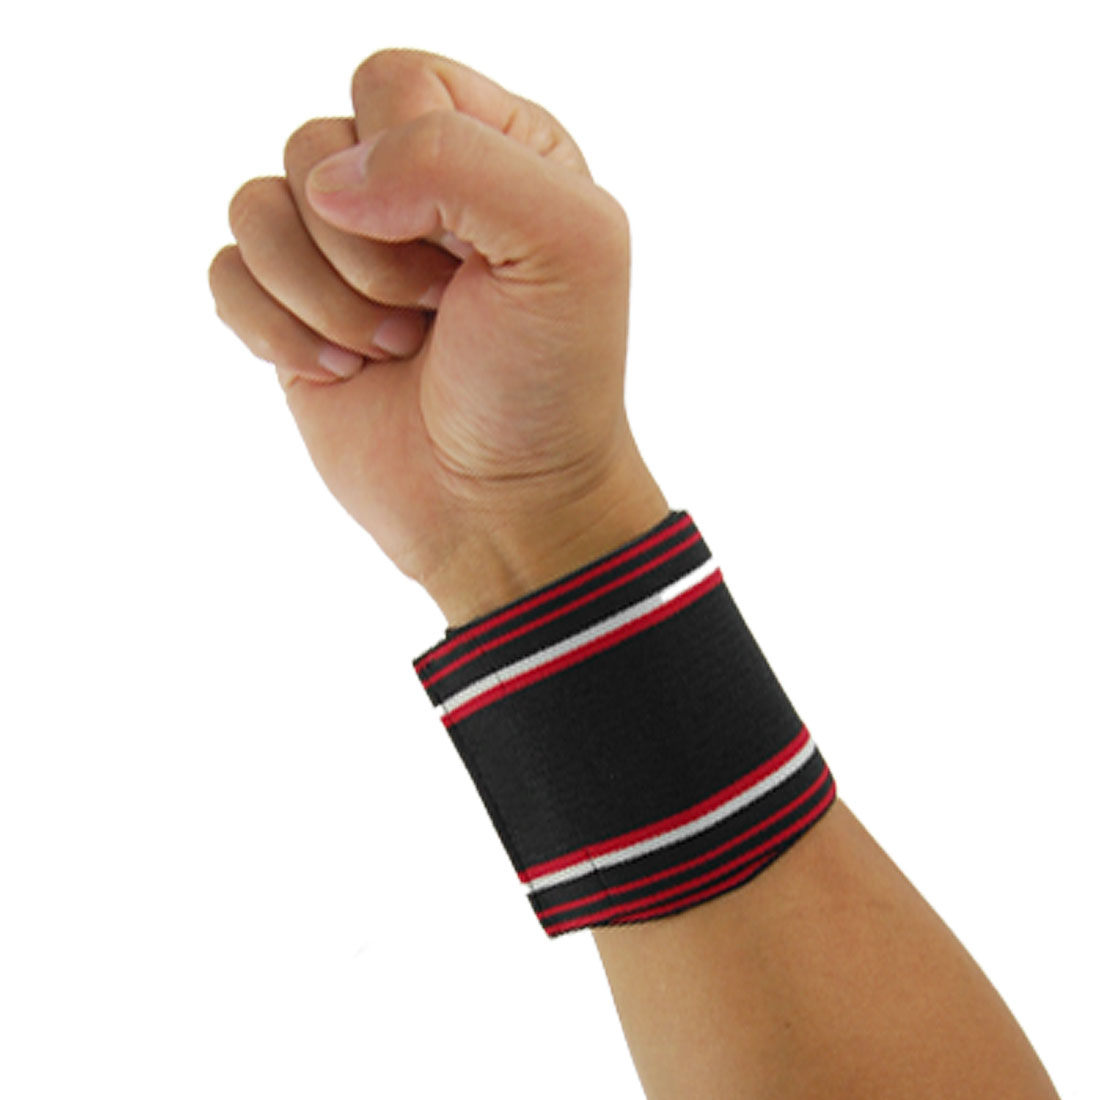 2 Pcs Hook And Loop Closure Elastic Wrist Band Support Protector